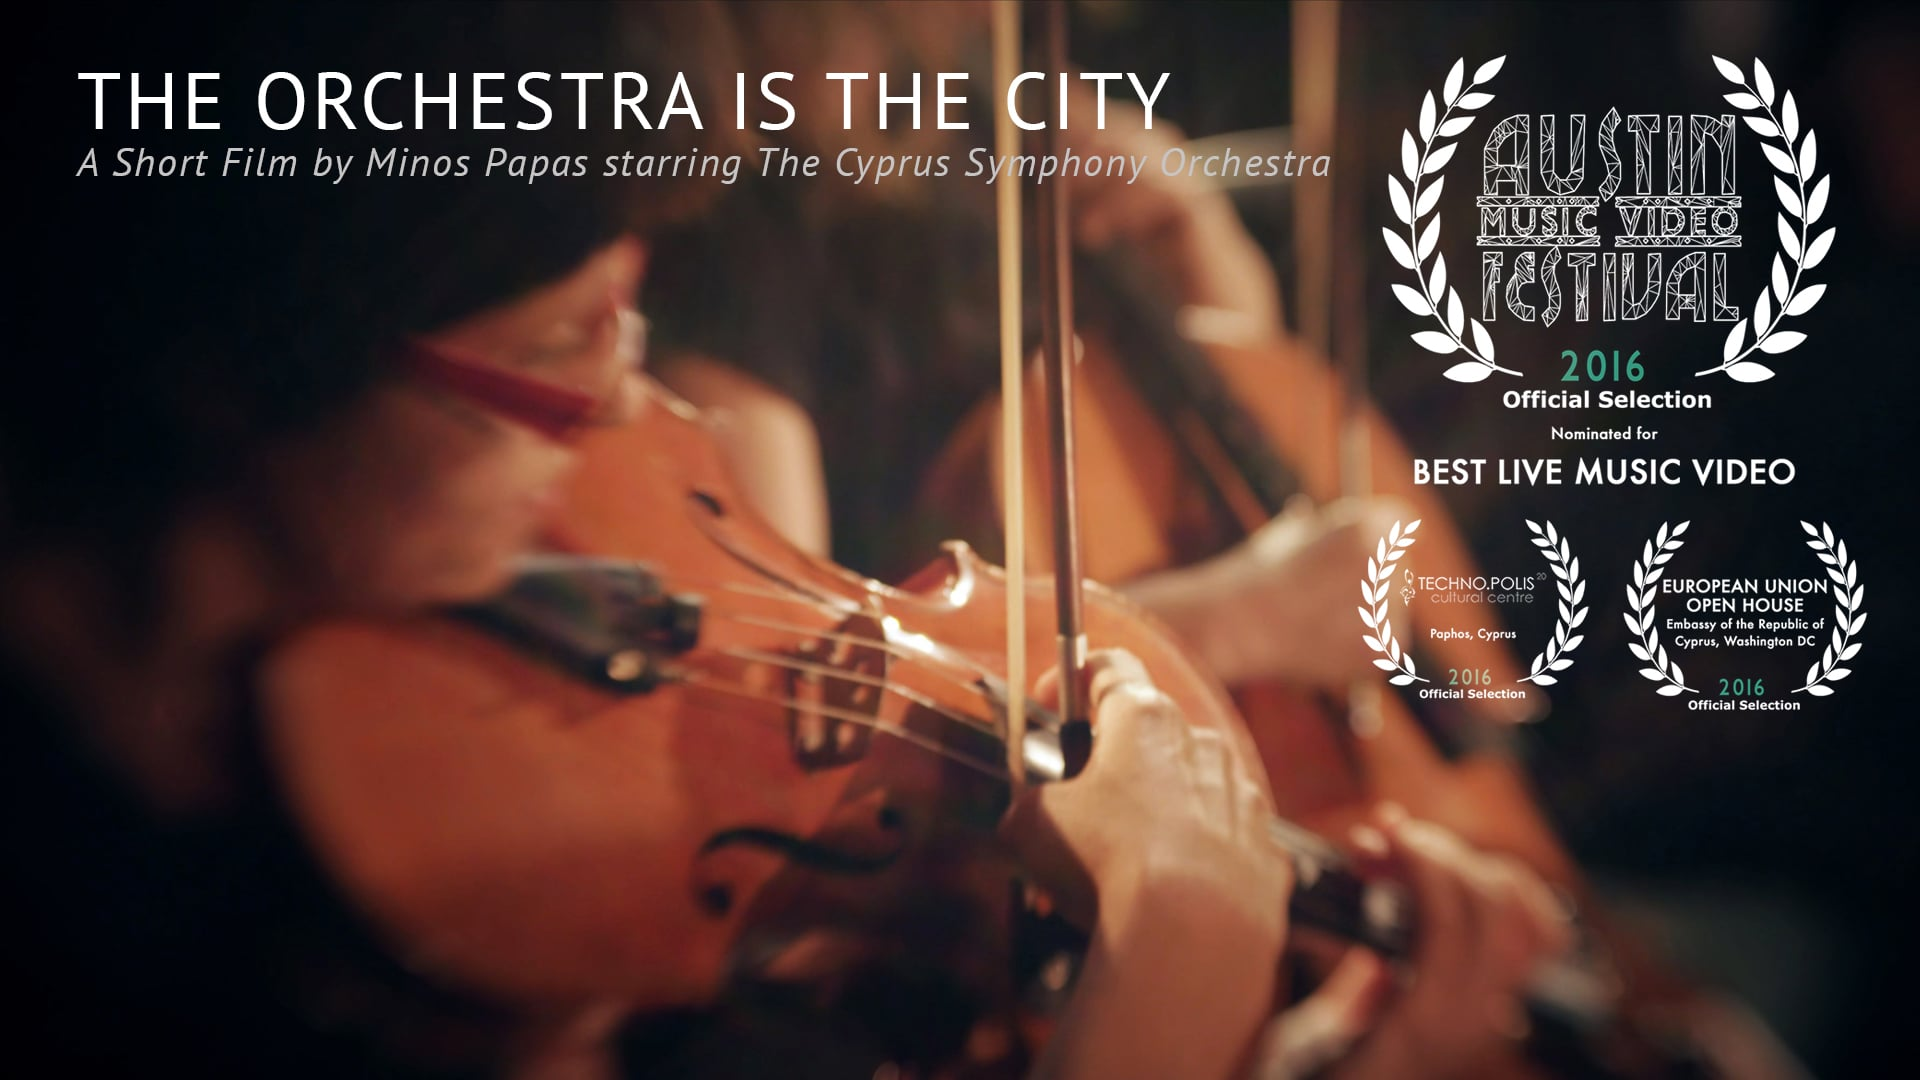 The Orchestra is the City